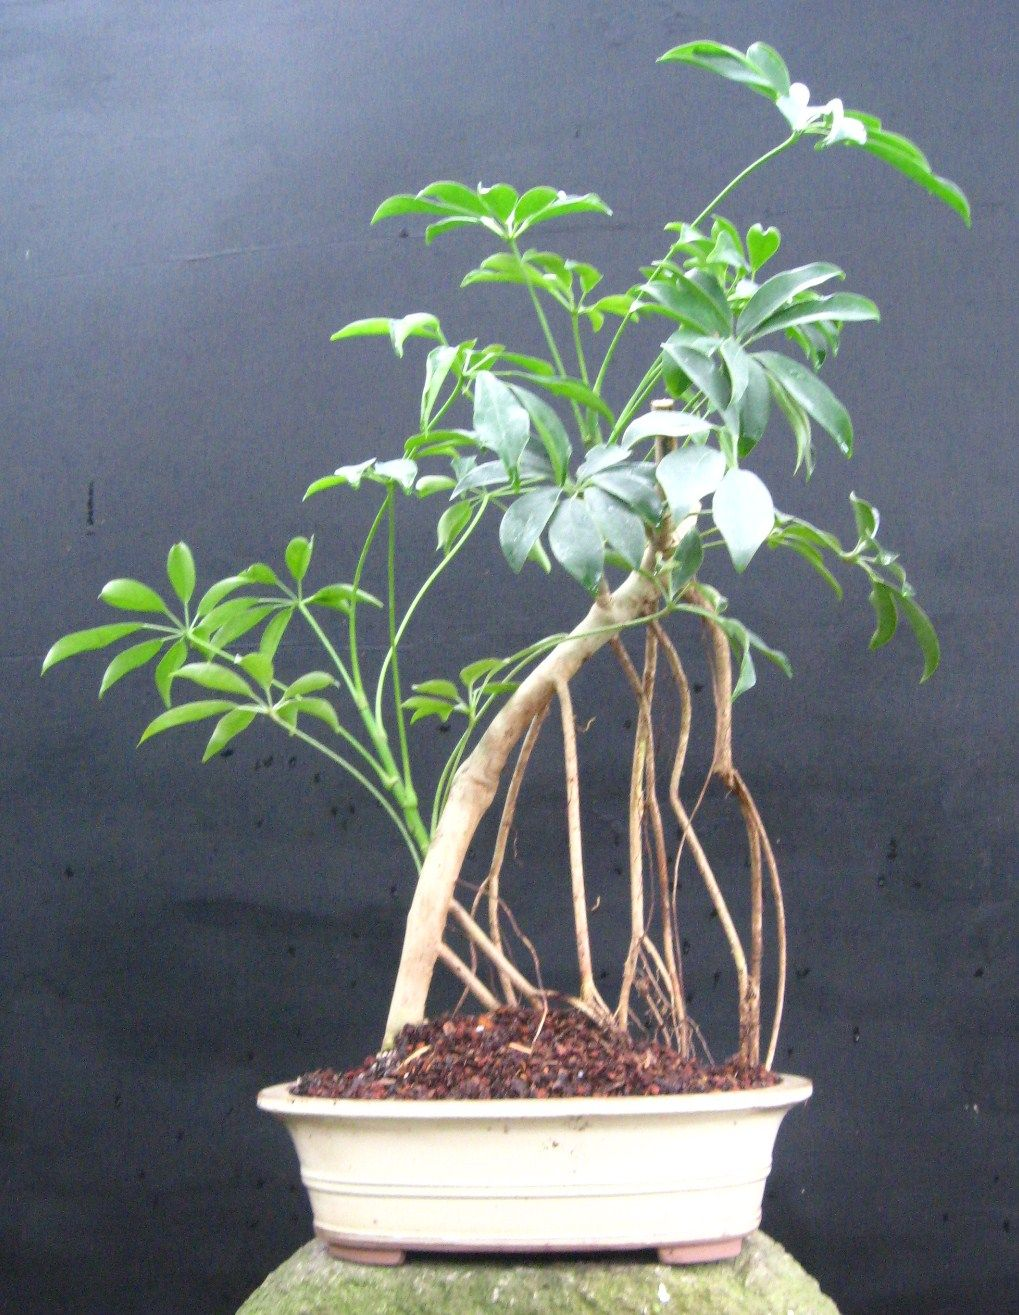 Bonsai Beginnings Hawaiian Schefflera Umbrella Tree